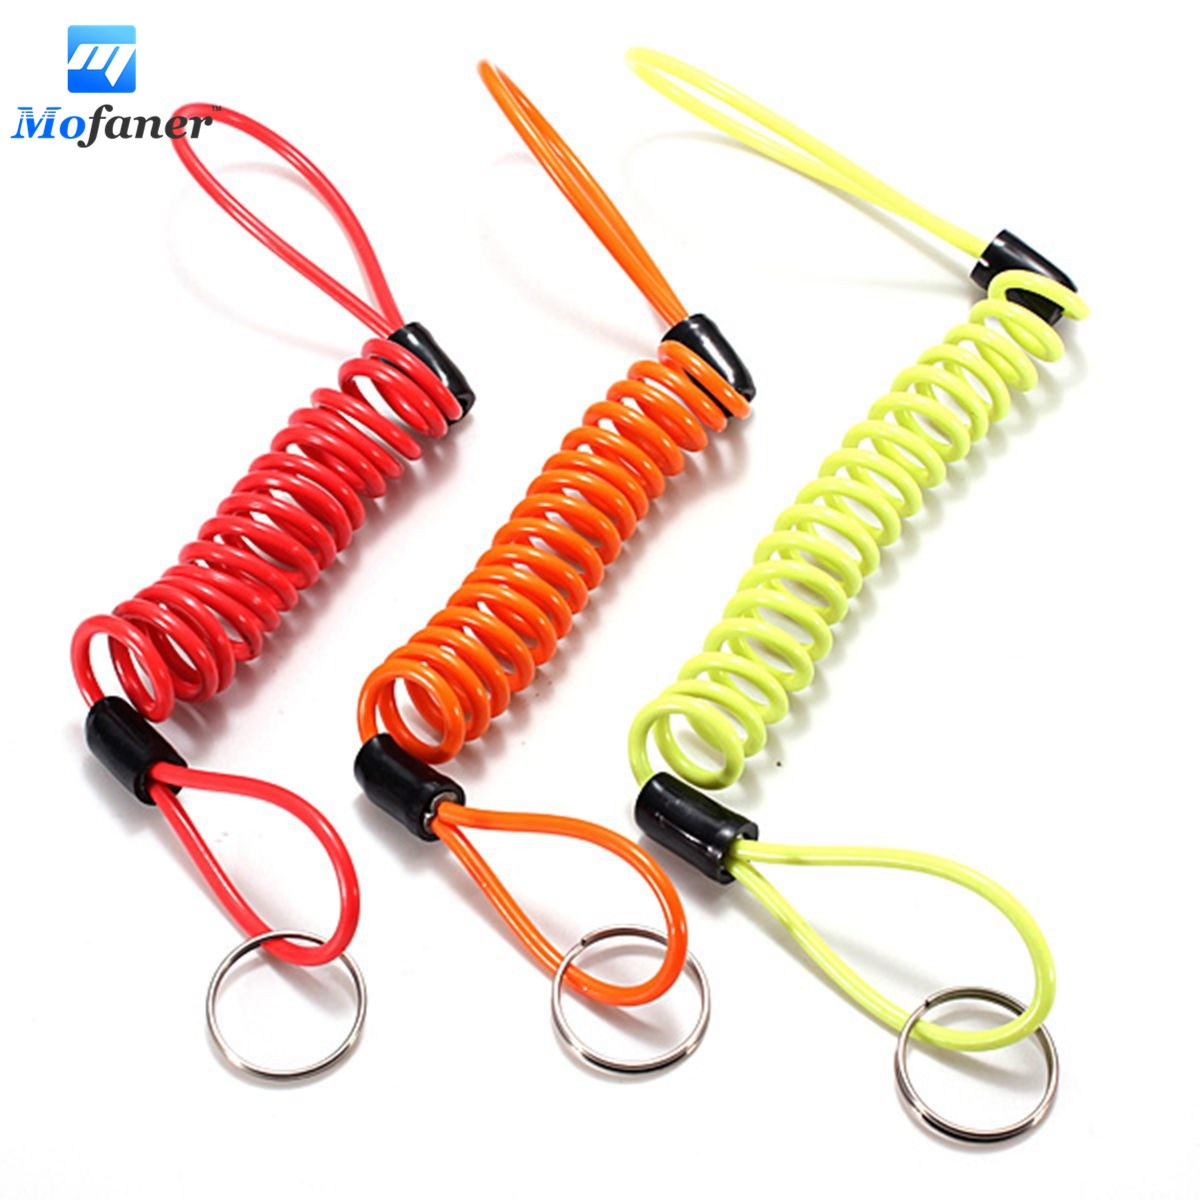 Mofaner Motorbike Motorcycle Scooter Disc Lock Security Spring Reminder Cable 3 Color